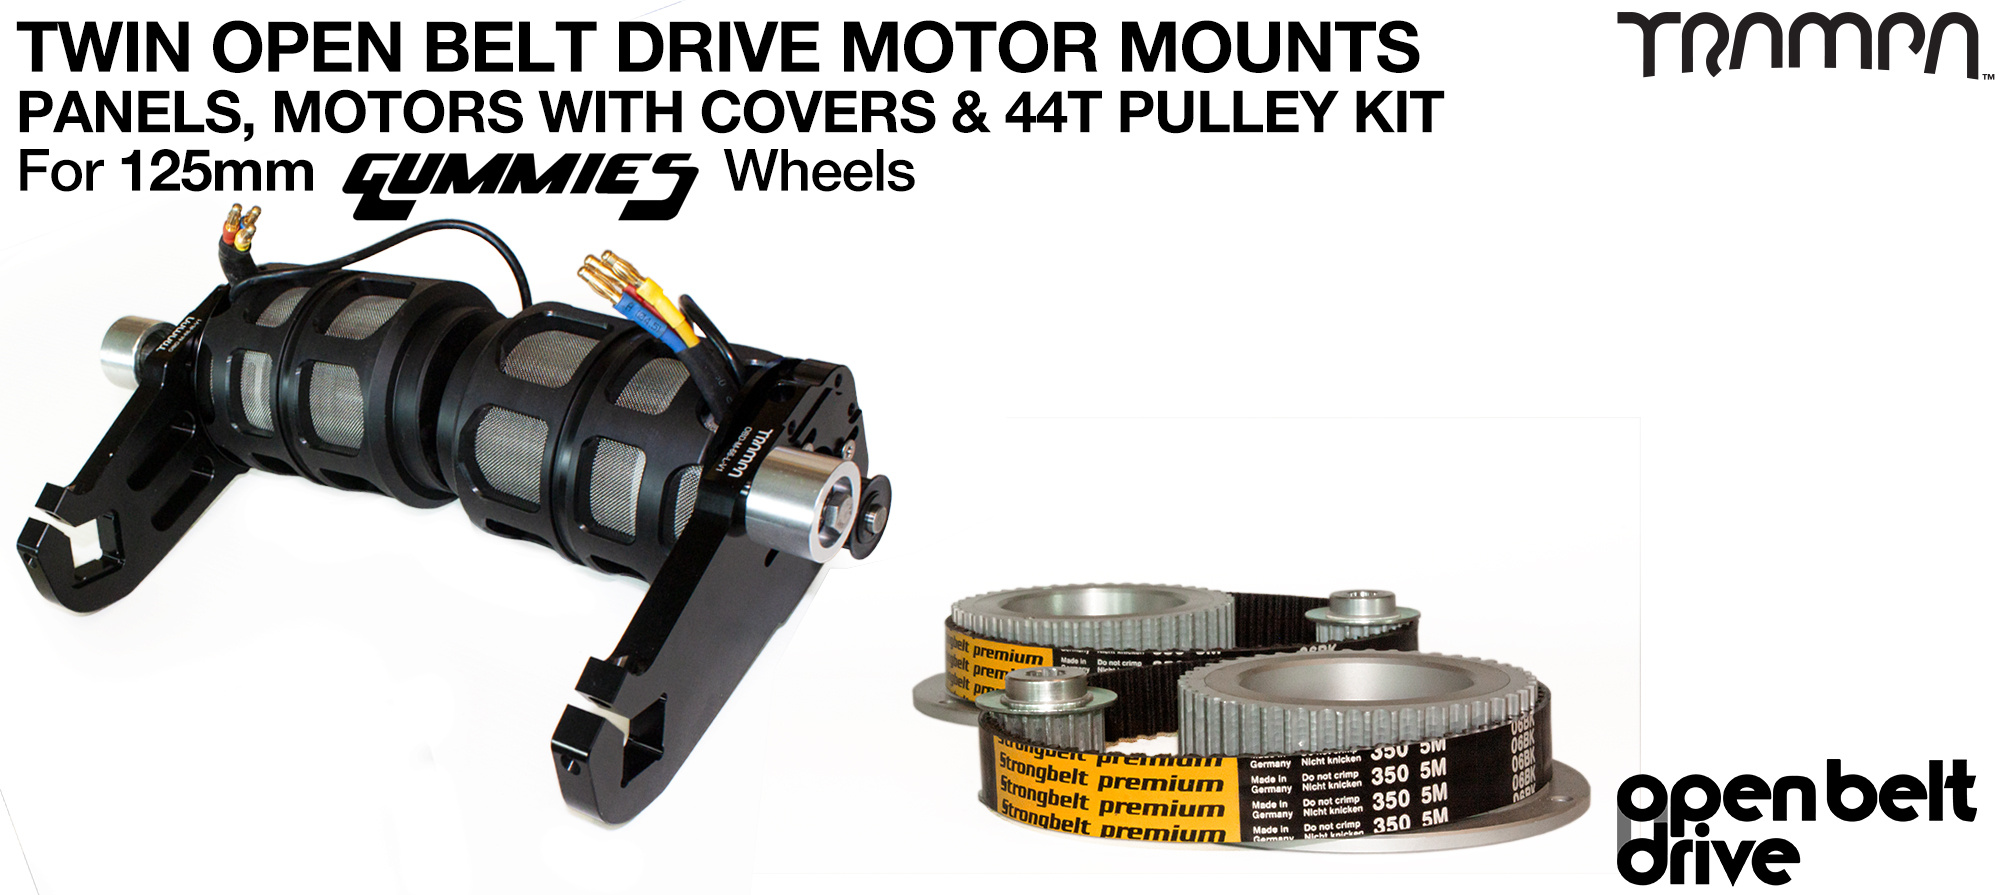 66T OBD Motor Mount with 44T Pulley kit, Motor & Filters  - TWIN